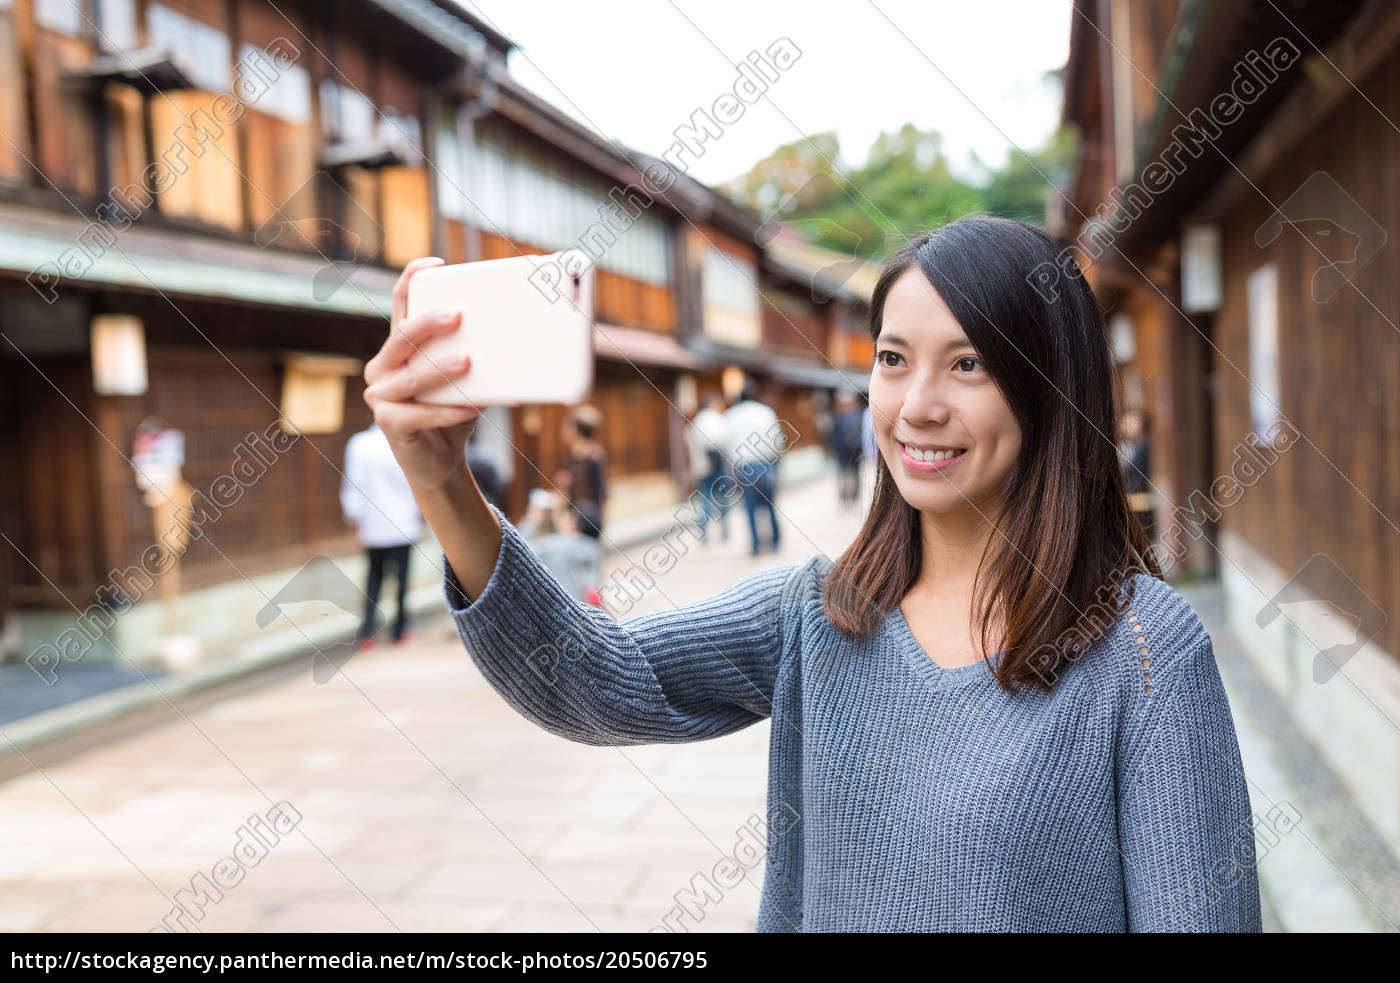 woman, using, cellphone, to, take, photo - 20506795